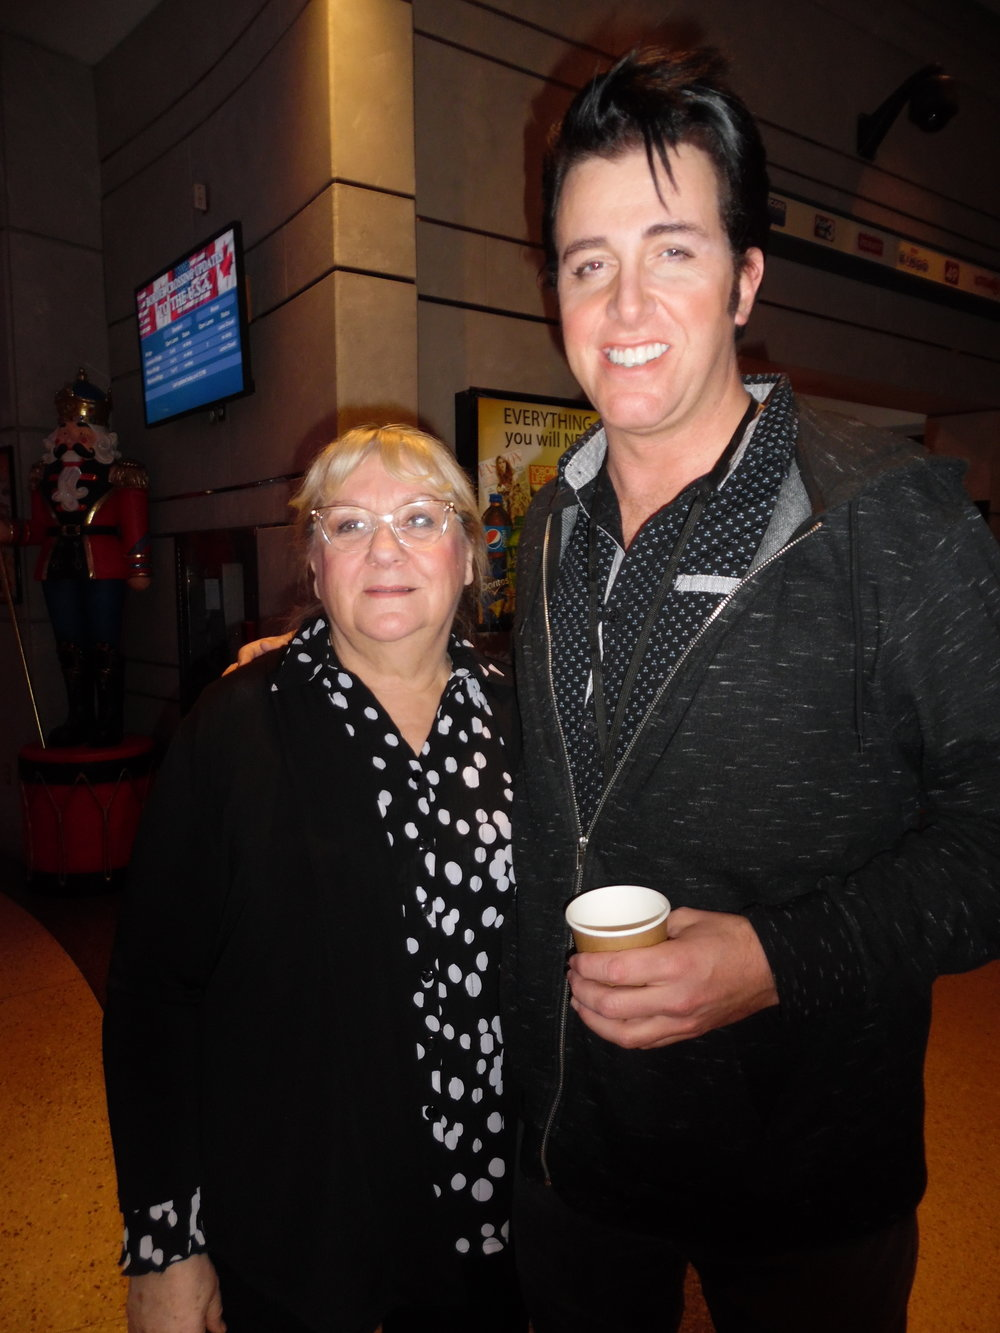 ETA  Matt Cage  and Carolyn in the lobby at Casino Niagara, November 22nd, 2017.